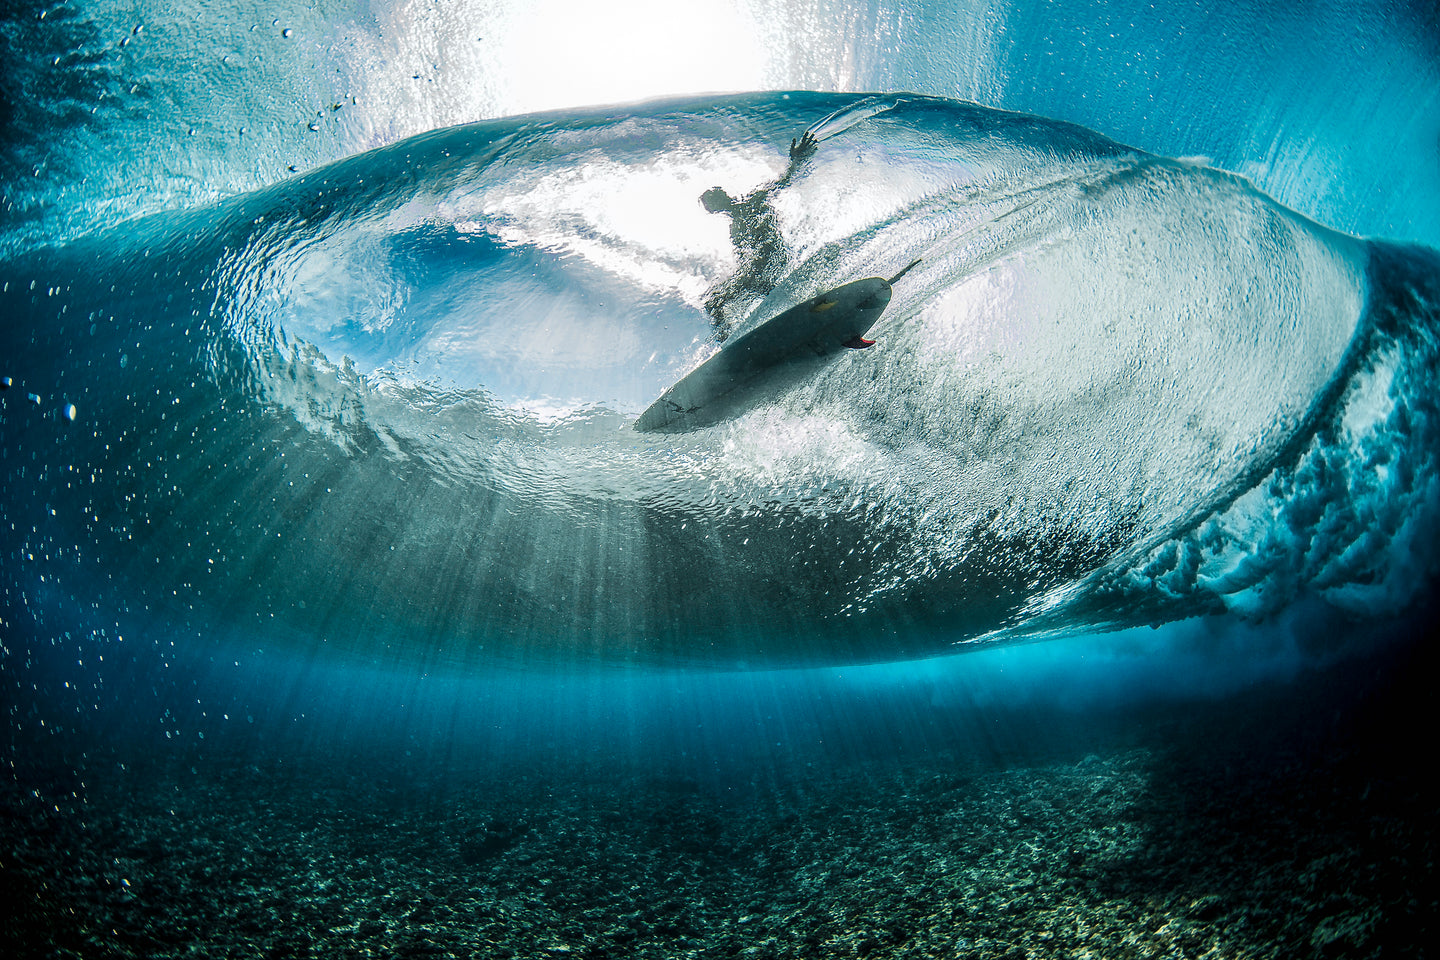 Picture of a surfer standing on a surfboard, taken from below.  Main photo on how page of Crepic website at livecrepic.com.  Taken by Ben Thouard